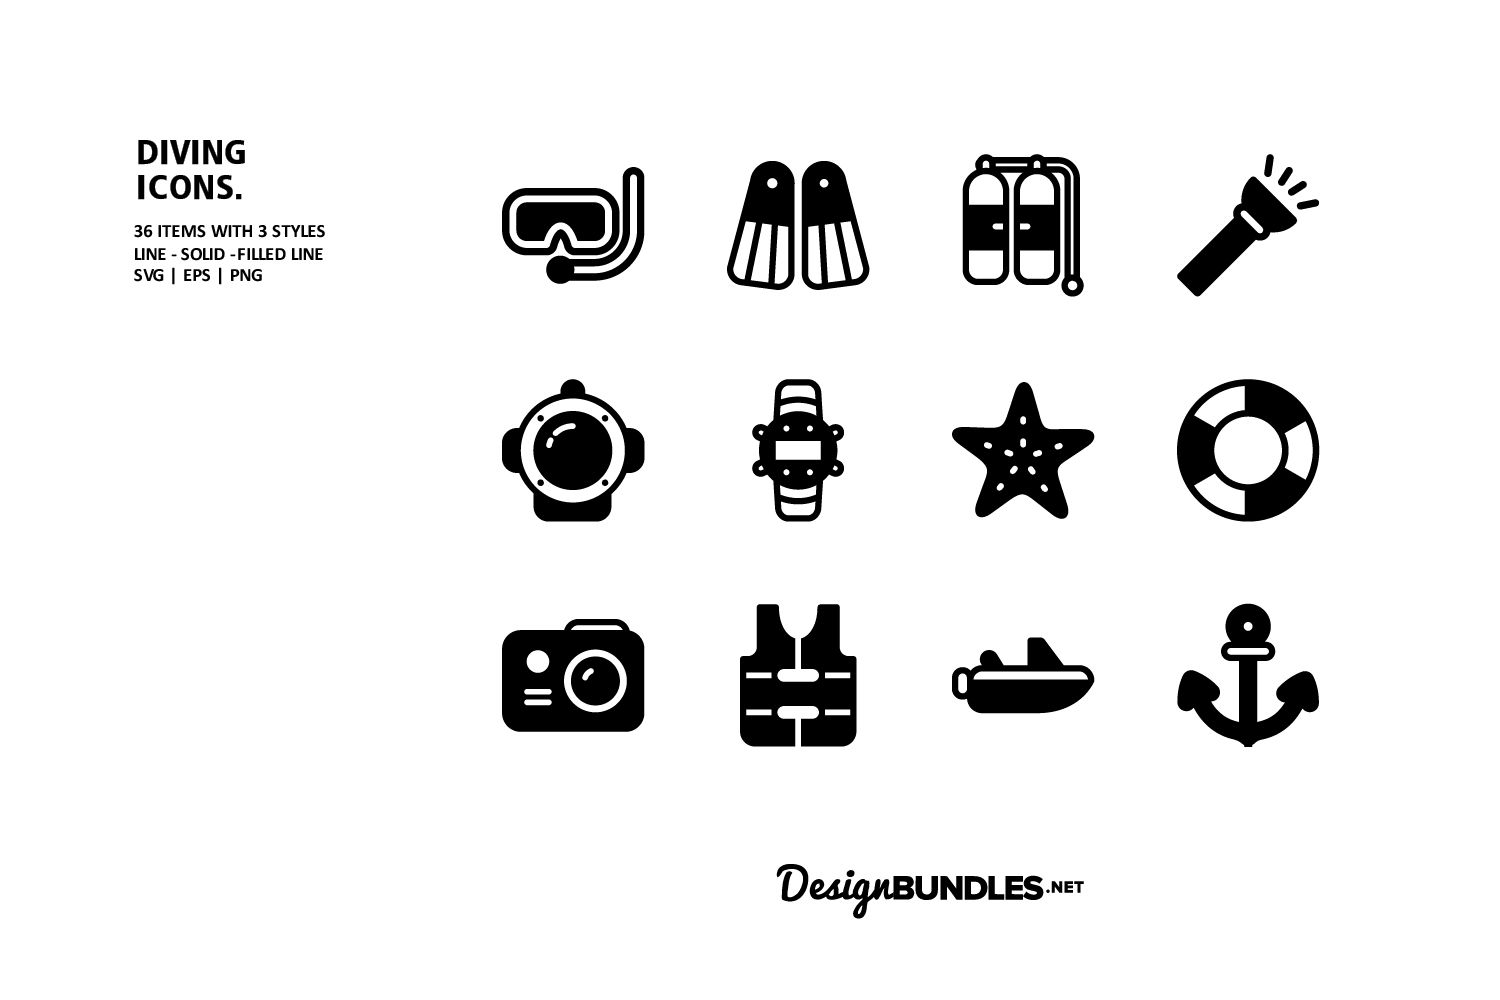 Diving Icons example image 2